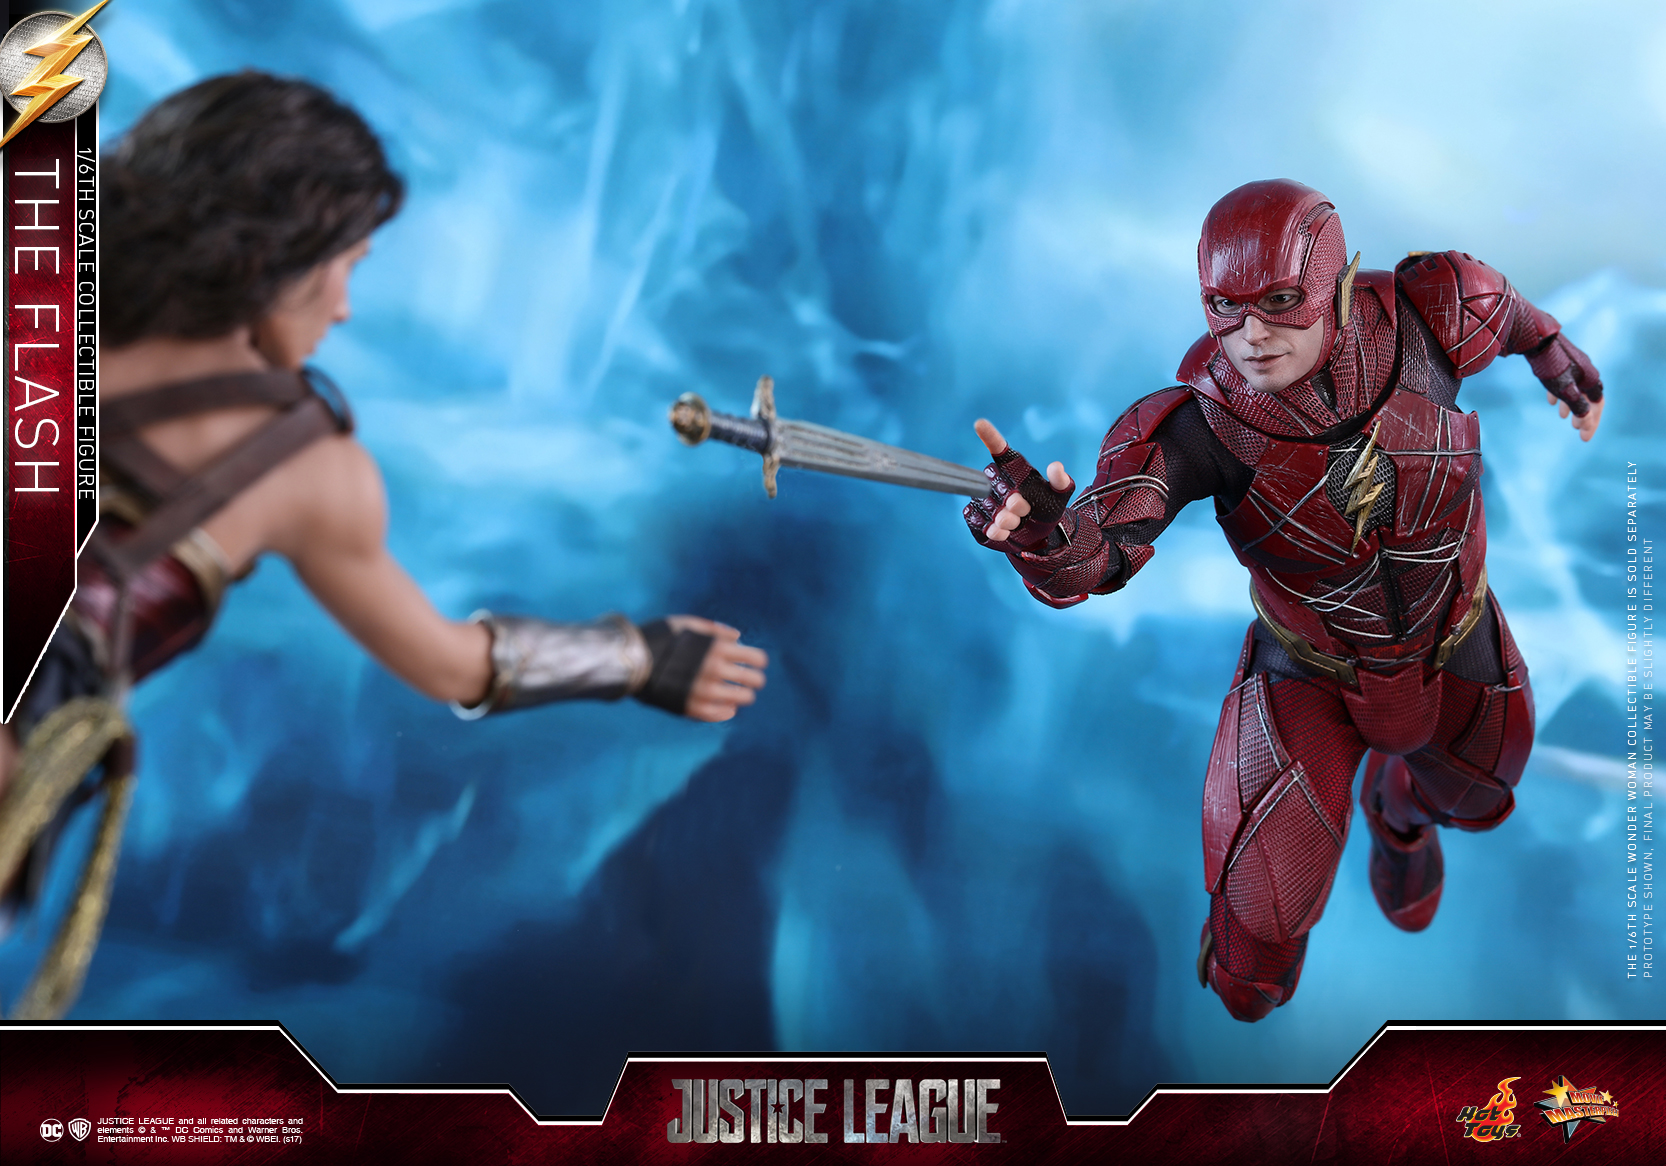 Hot Toys - Justice League - The Flash Collectible Figure_PR14.jpg